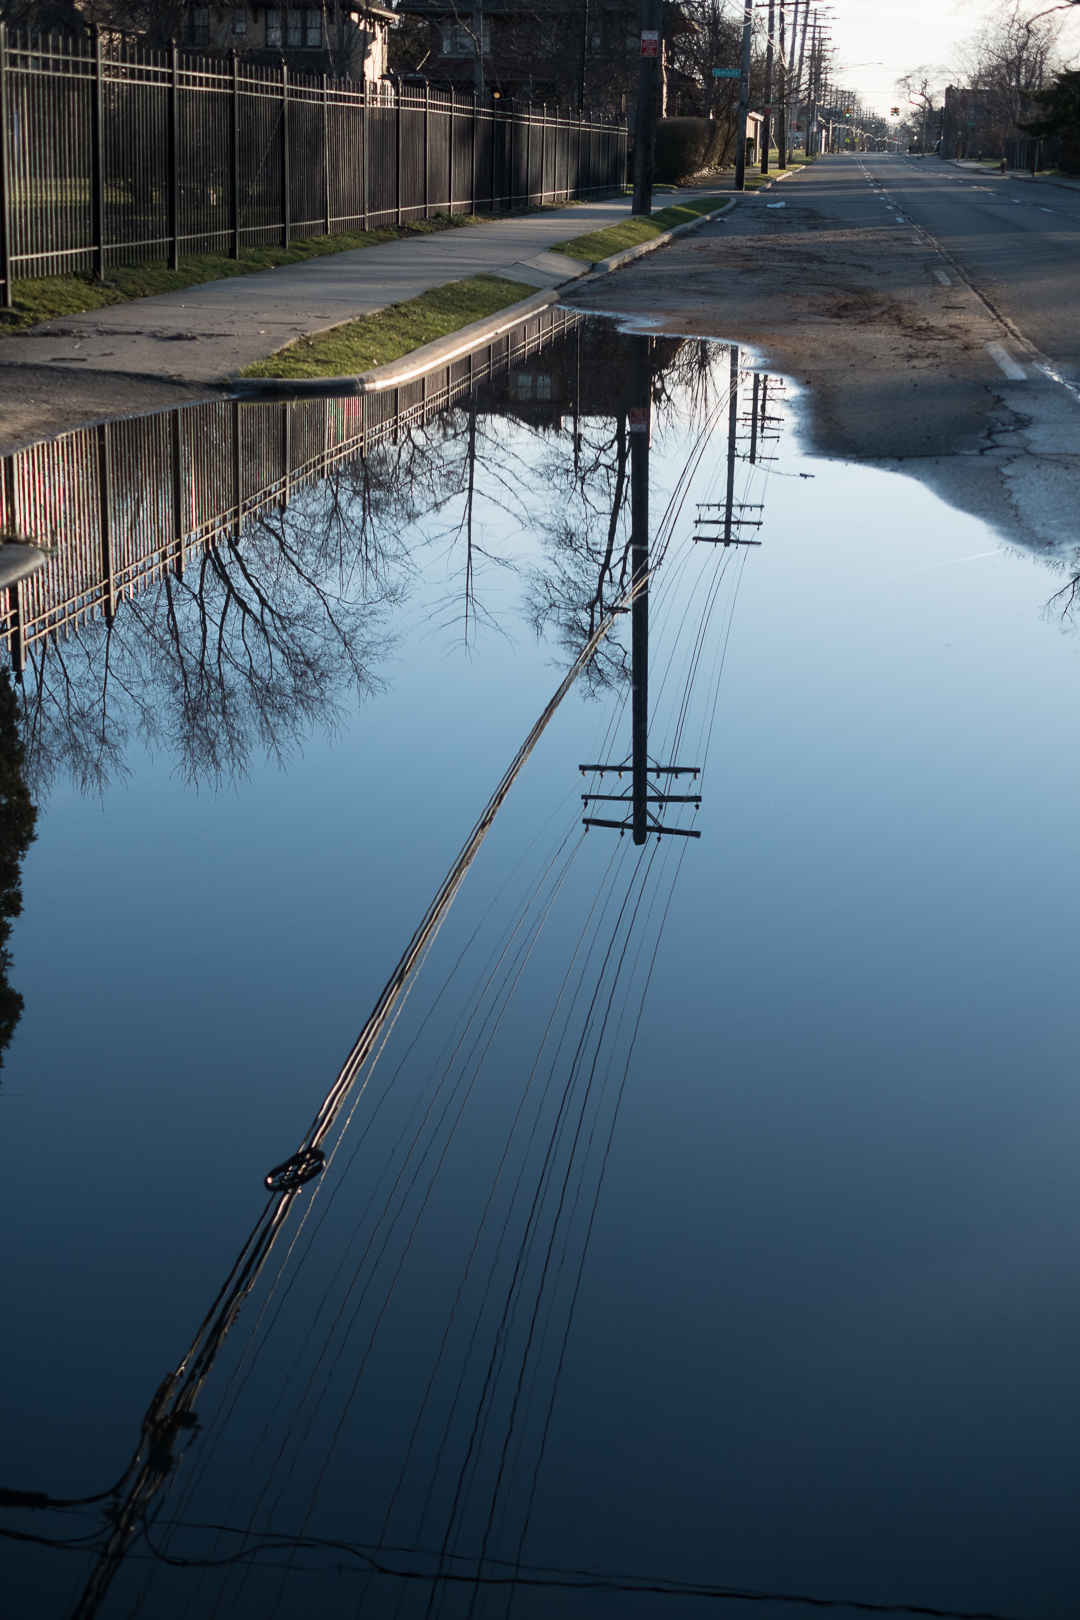 A flooded street reflect a series of power lines.